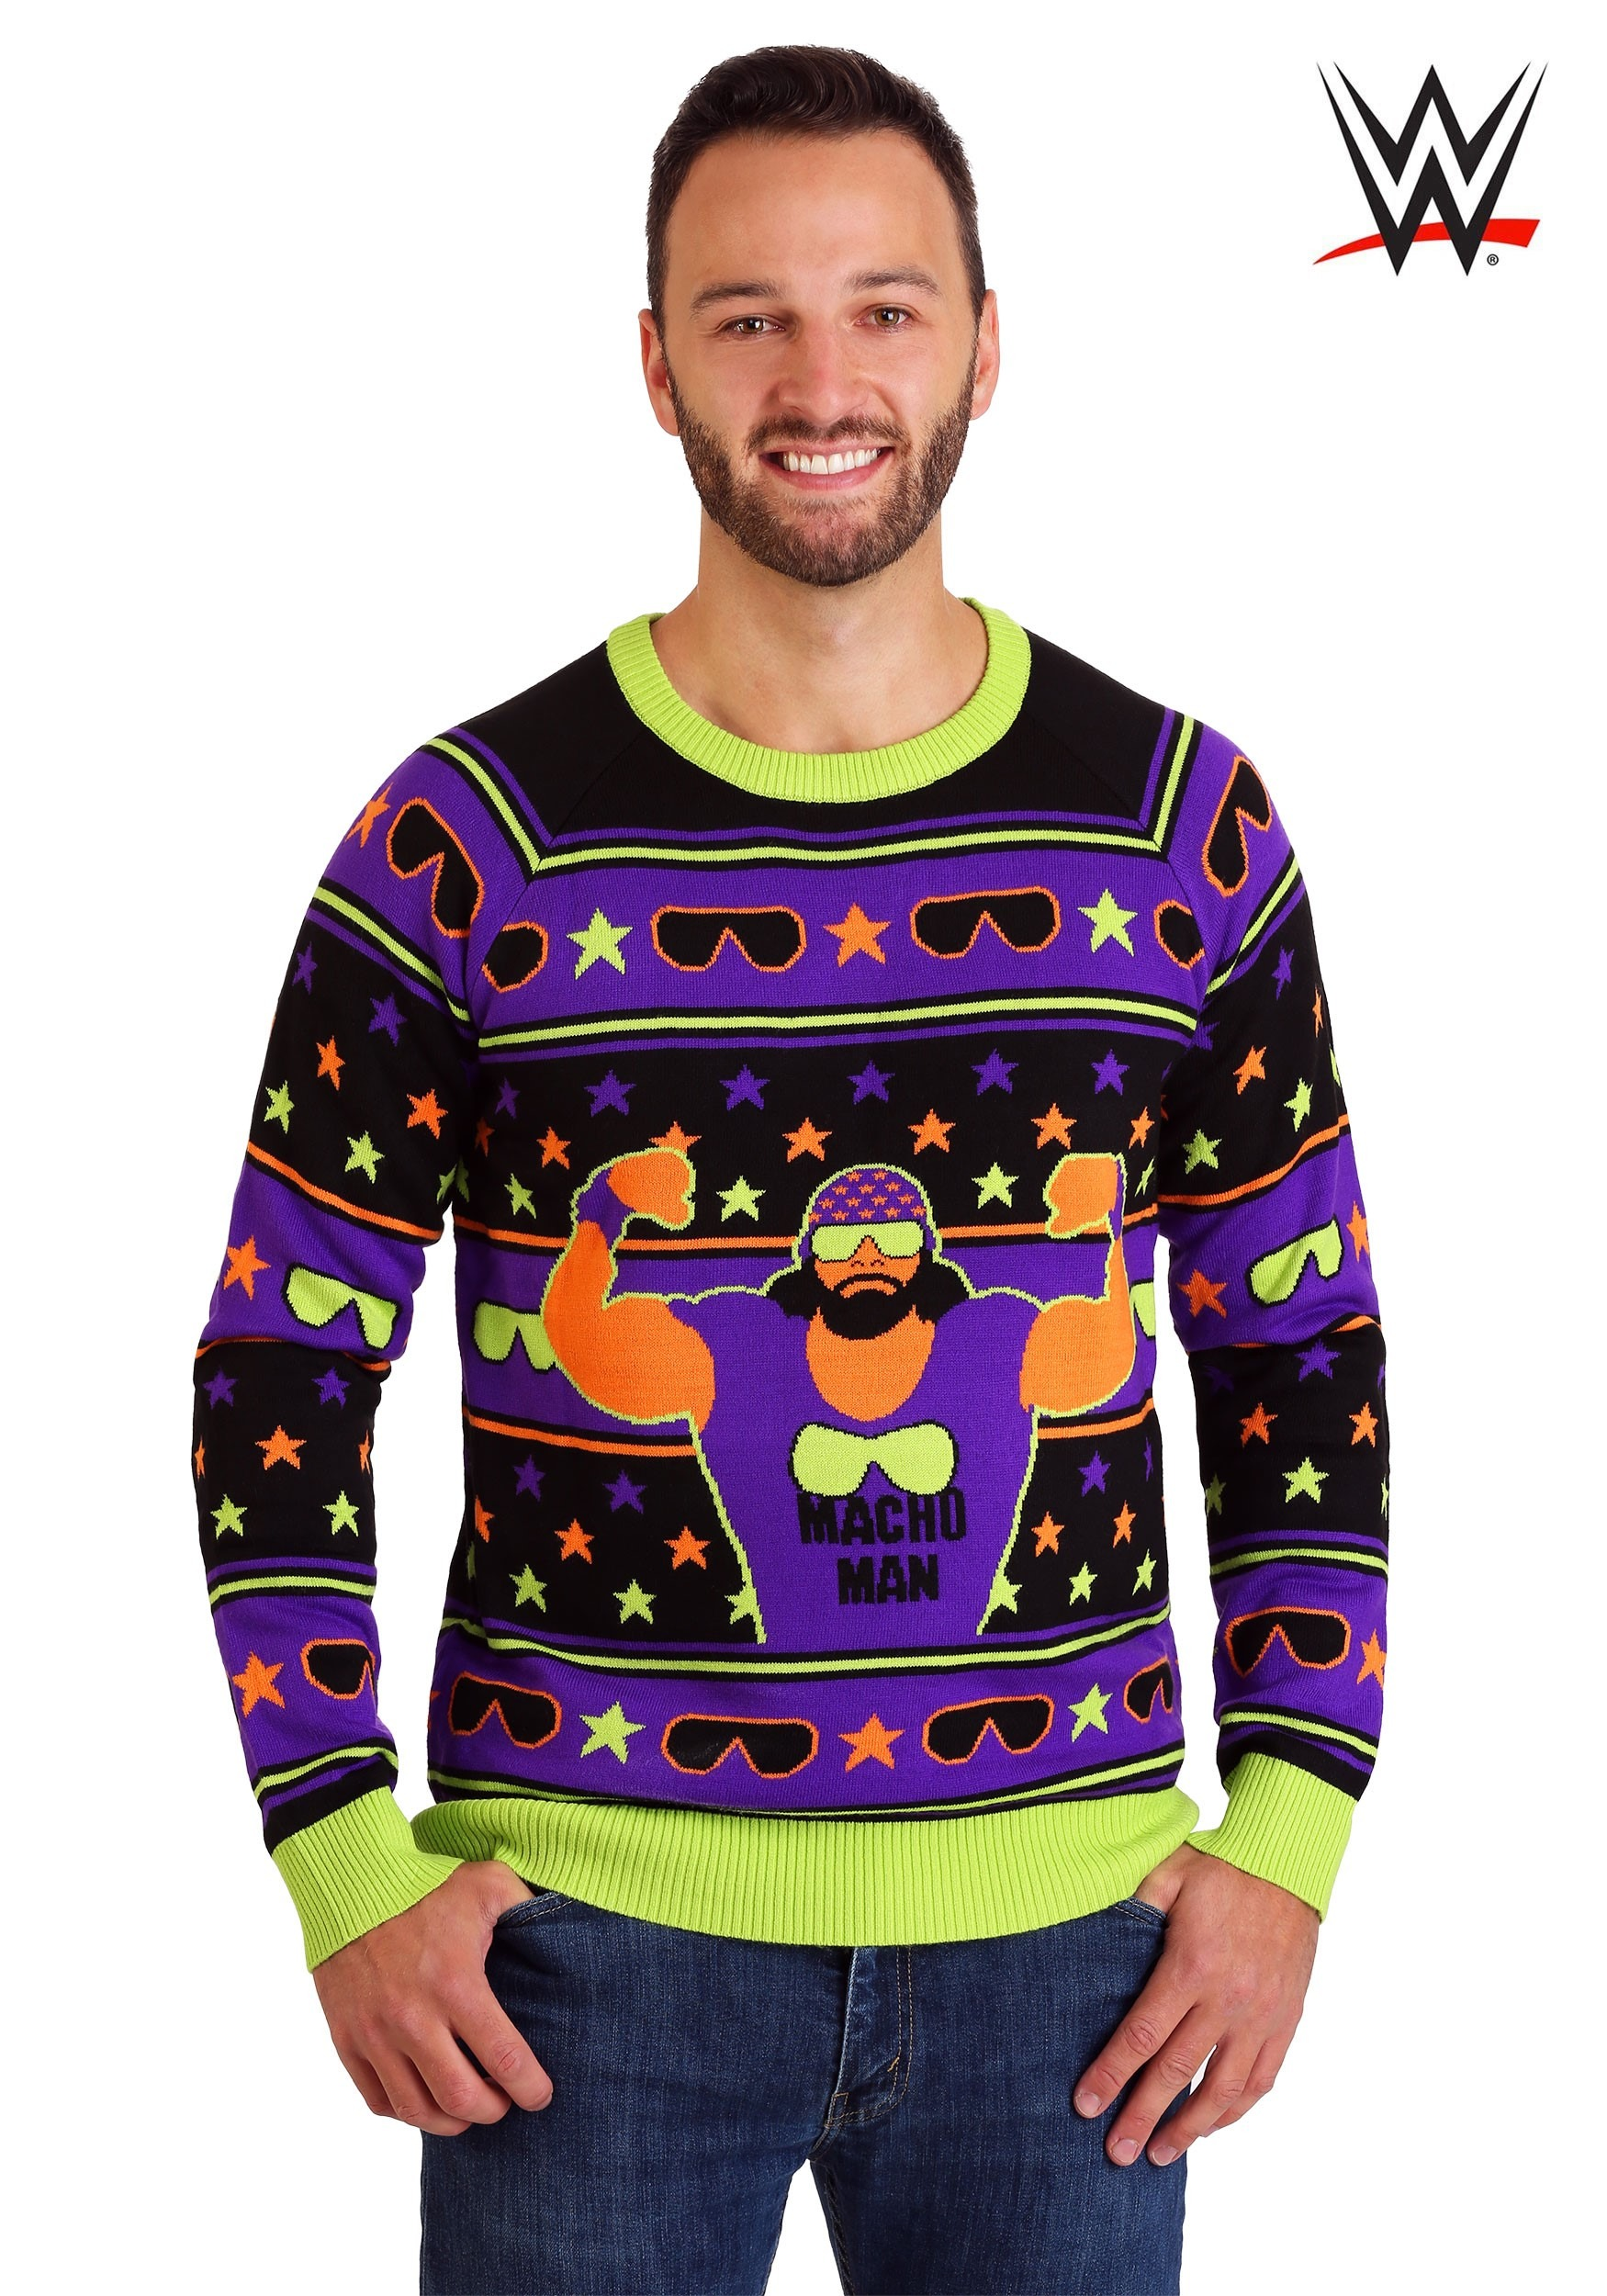 Wwe Macho Man Adult Ugly Christmas Sweater